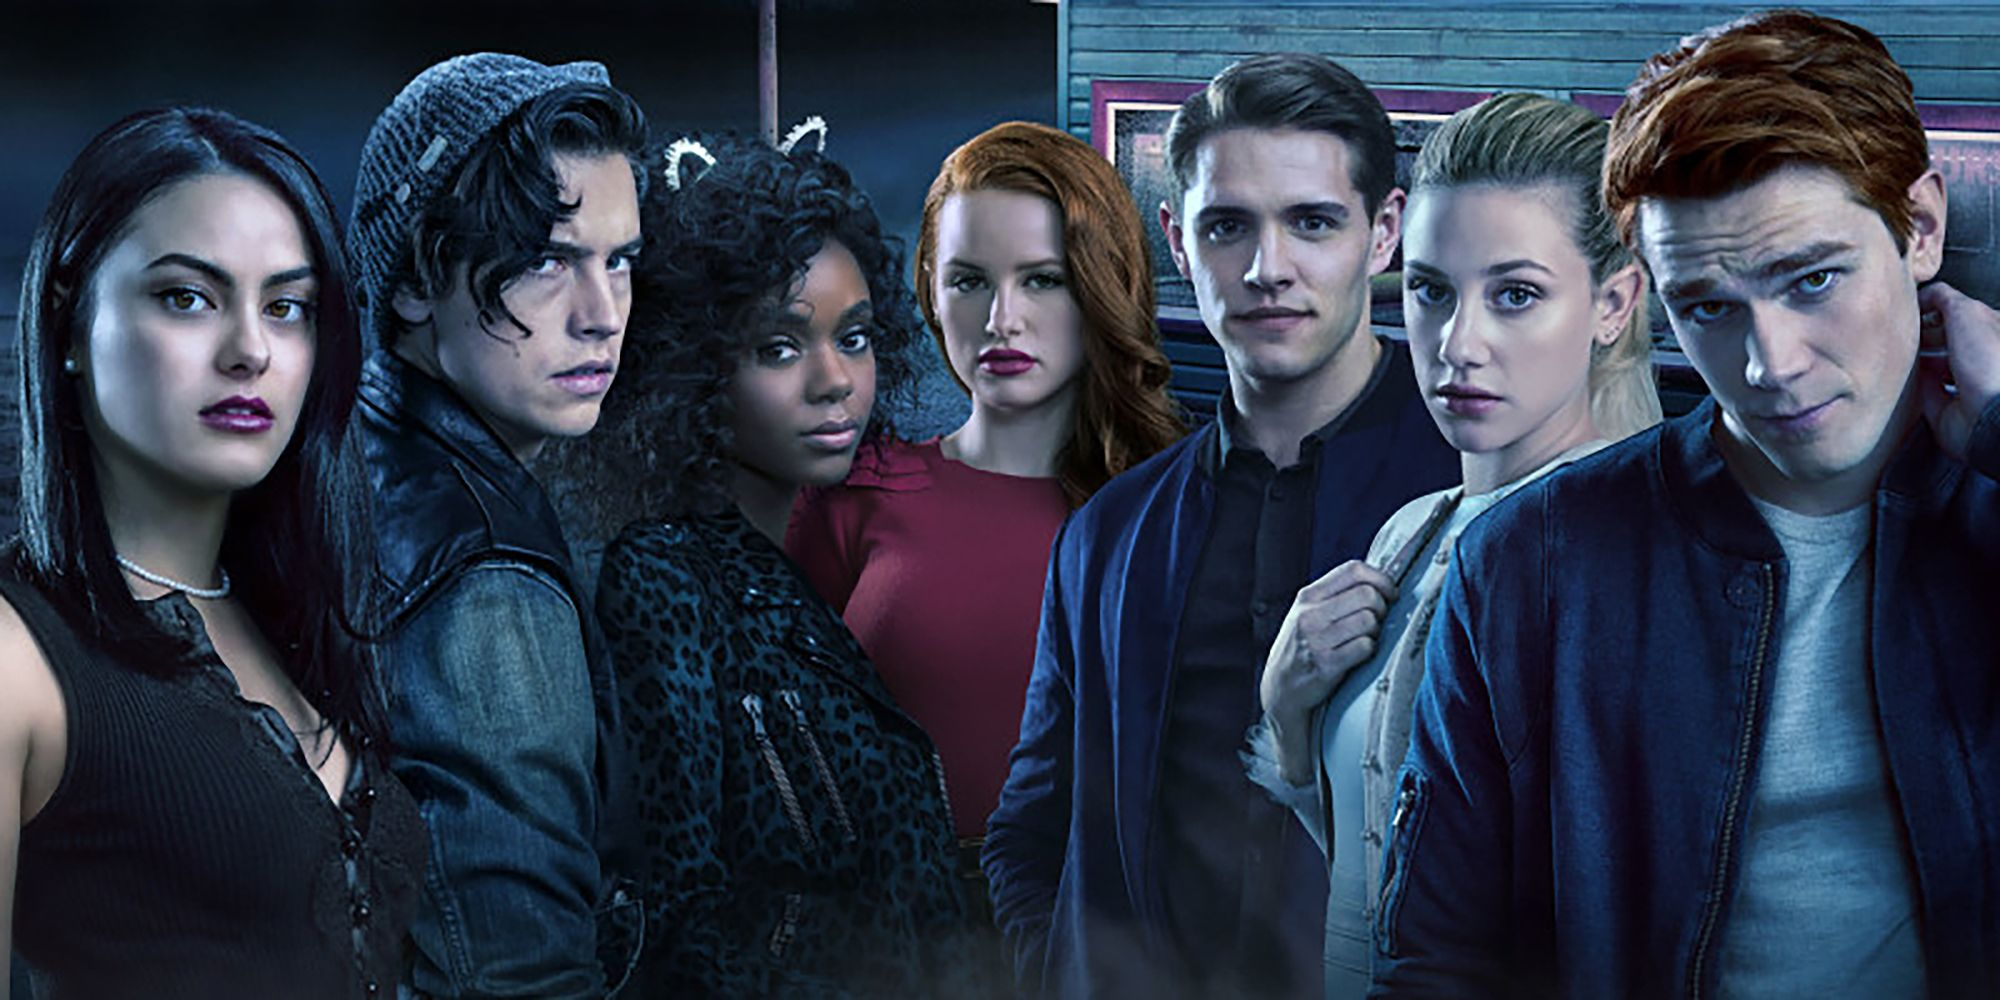 21 Things You Didn't Know About 'Riverdale'